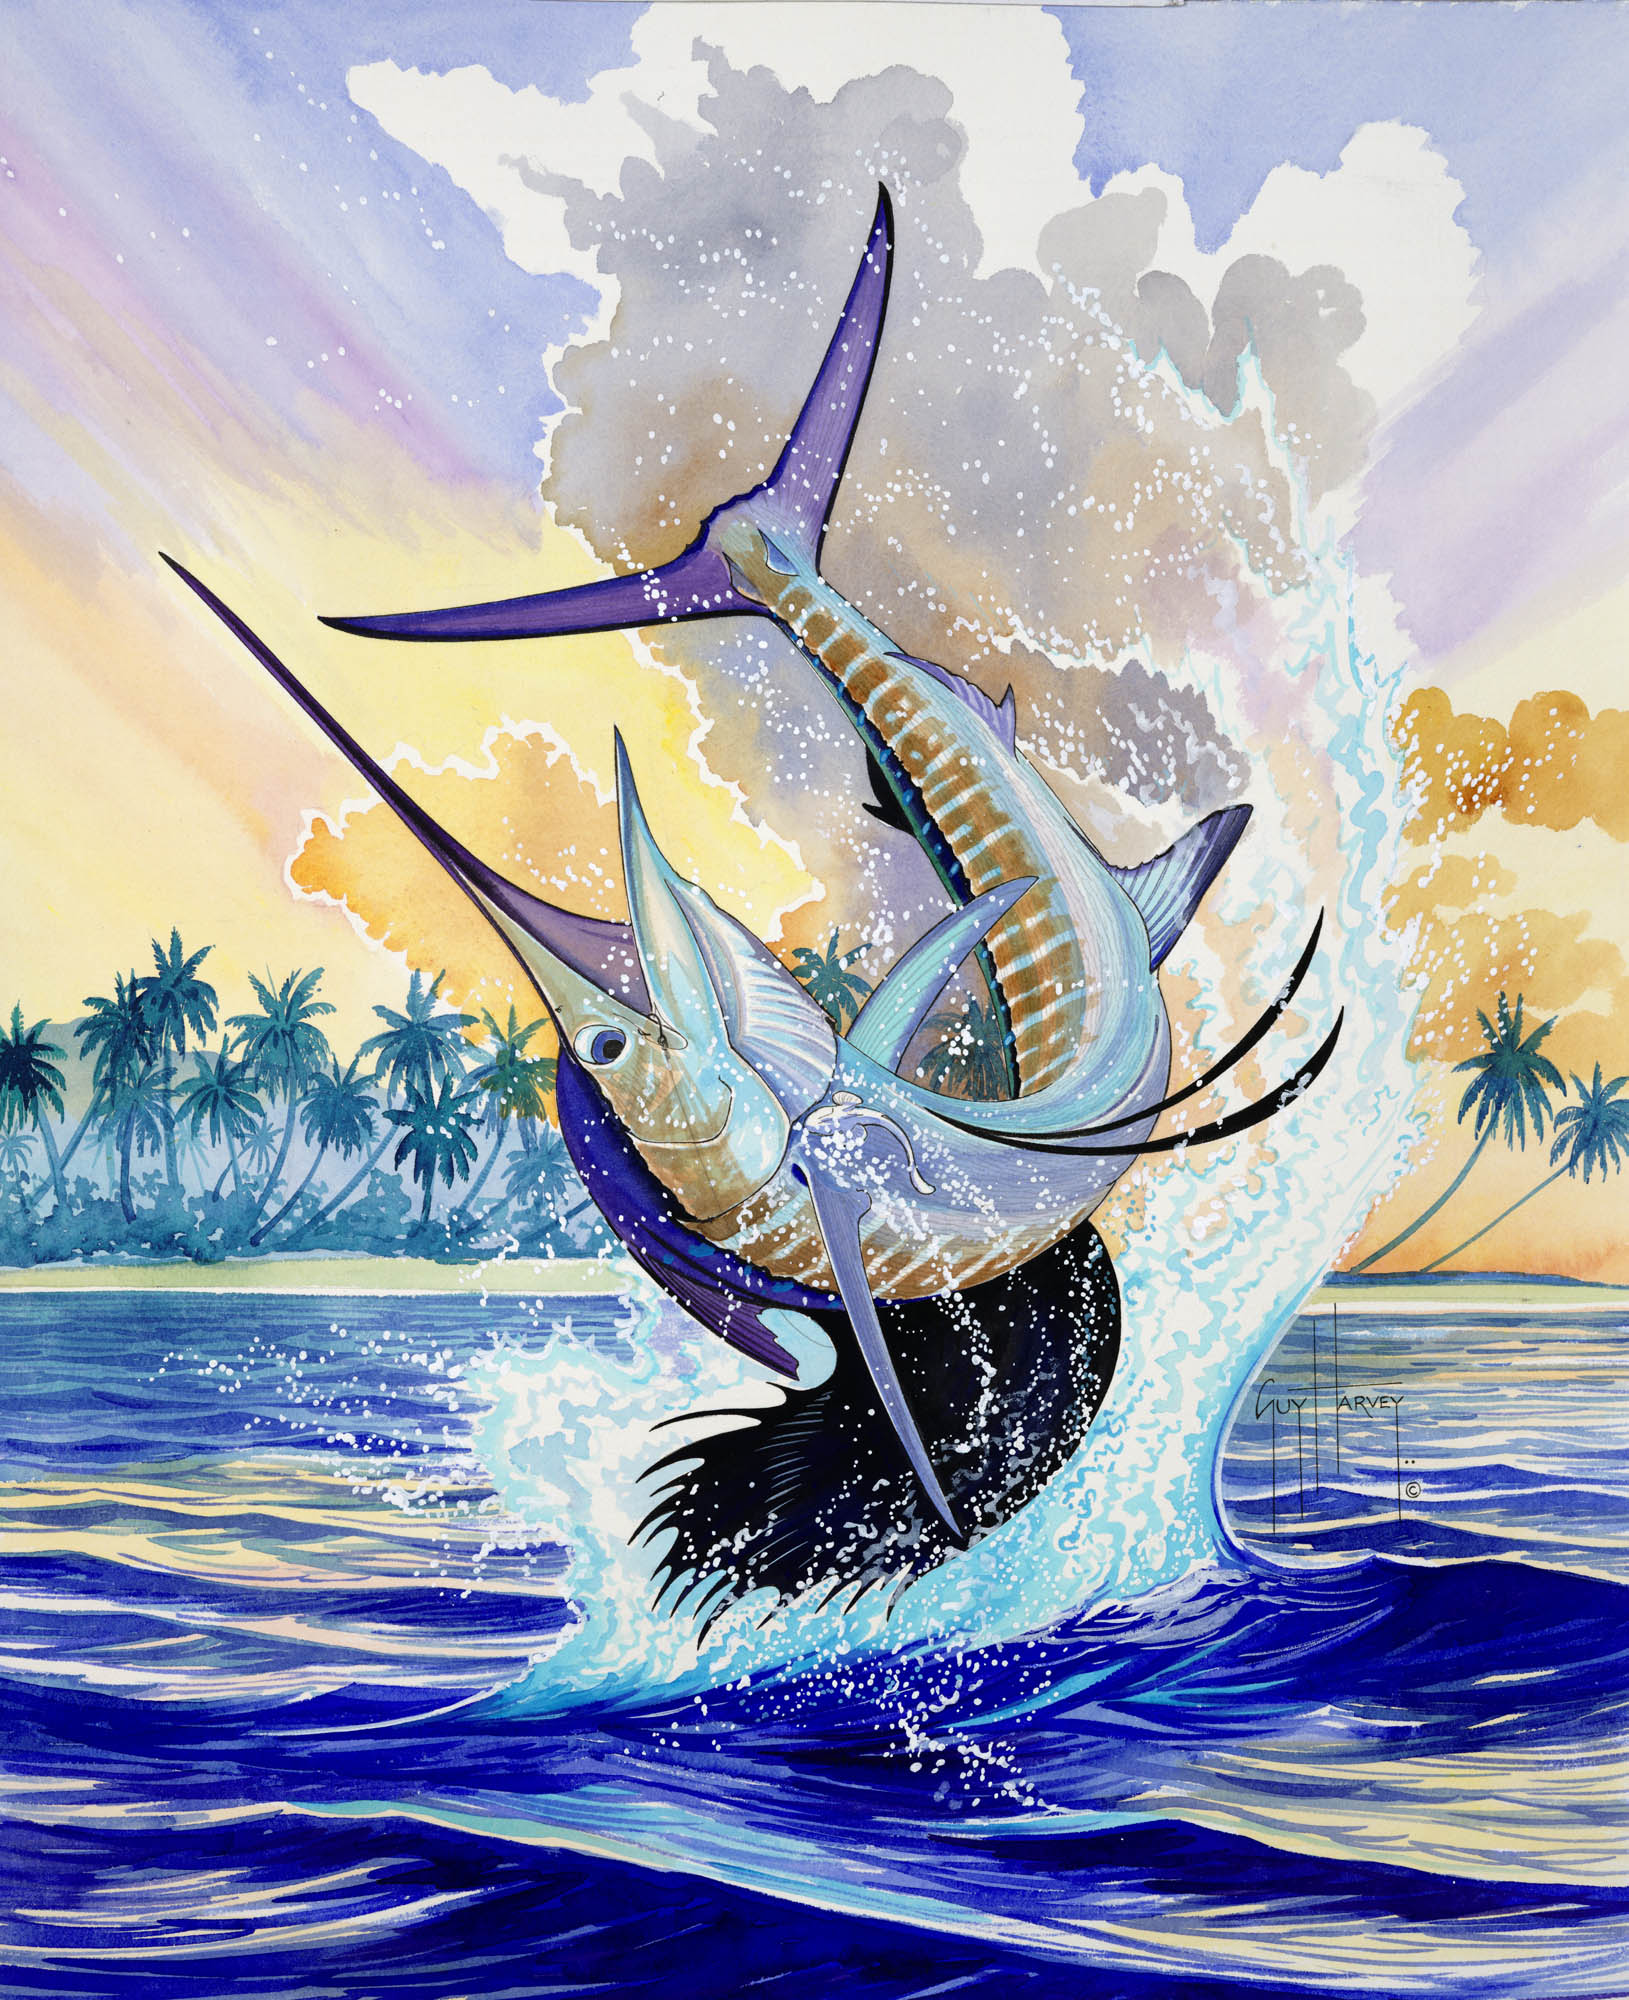 biography and artwork of guy harvey Biography and artwork of guy harvey guy harvey was born in lippspring germany on september 16 1955 guy harvey is a 10th generation jamaican as his family of german heritage immigrated there.